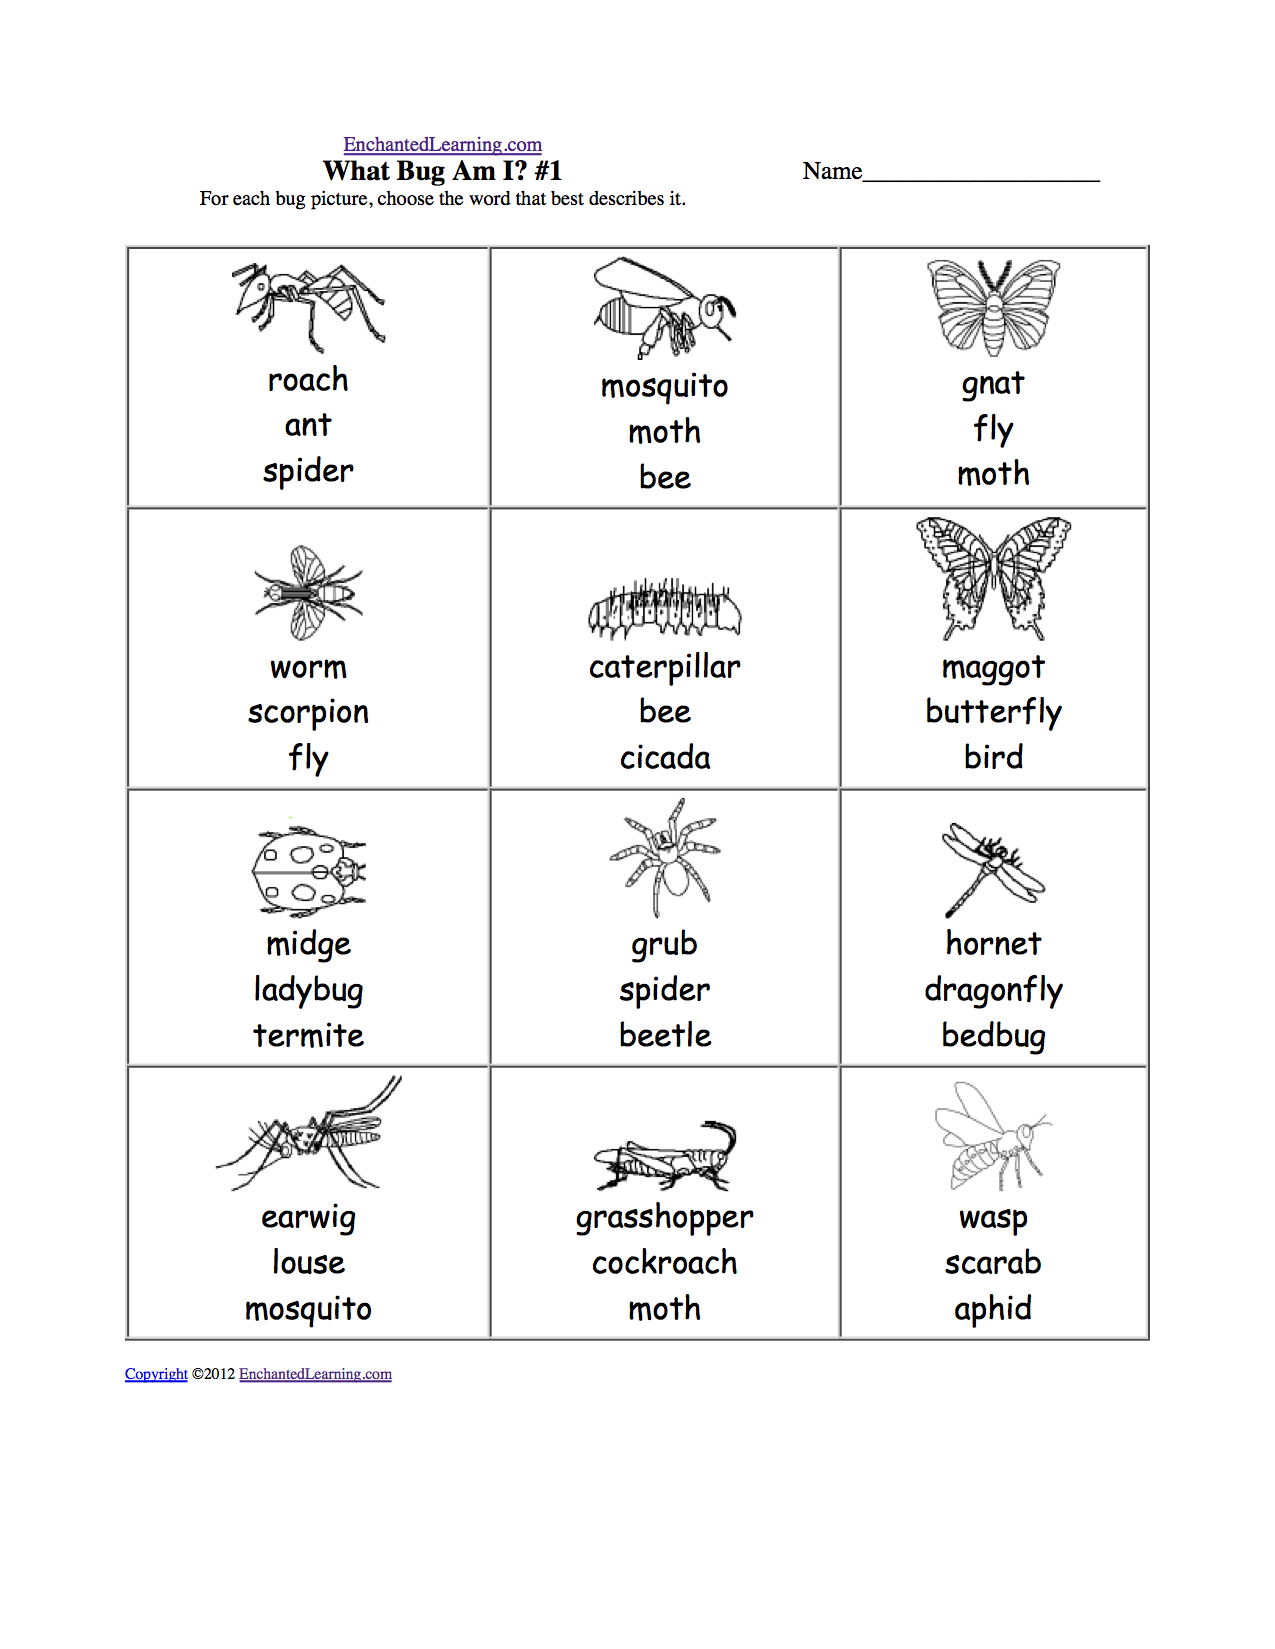 Aldiablosus  Wonderful What Am I Worksheet Printouts  Enchantedlearningcom With Heavenly Alphabet Symmetry Worksheet Besides Adding Negative Numbers Worksheets Furthermore Grammar Worksheets First Grade With Easy On The Eye Math Worksheets Work Also Tracing Words Worksheet In Addition Order Of Operations Pemdas Worksheets And Adjectives Worksheets For Th Grade As Well As Proper Noun Worksheets St Grade Additionally Worksheet On Adding And Subtracting Decimals From Enchantedlearningcom With Aldiablosus  Heavenly What Am I Worksheet Printouts  Enchantedlearningcom With Easy On The Eye Alphabet Symmetry Worksheet Besides Adding Negative Numbers Worksheets Furthermore Grammar Worksheets First Grade And Wonderful Math Worksheets Work Also Tracing Words Worksheet In Addition Order Of Operations Pemdas Worksheets From Enchantedlearningcom